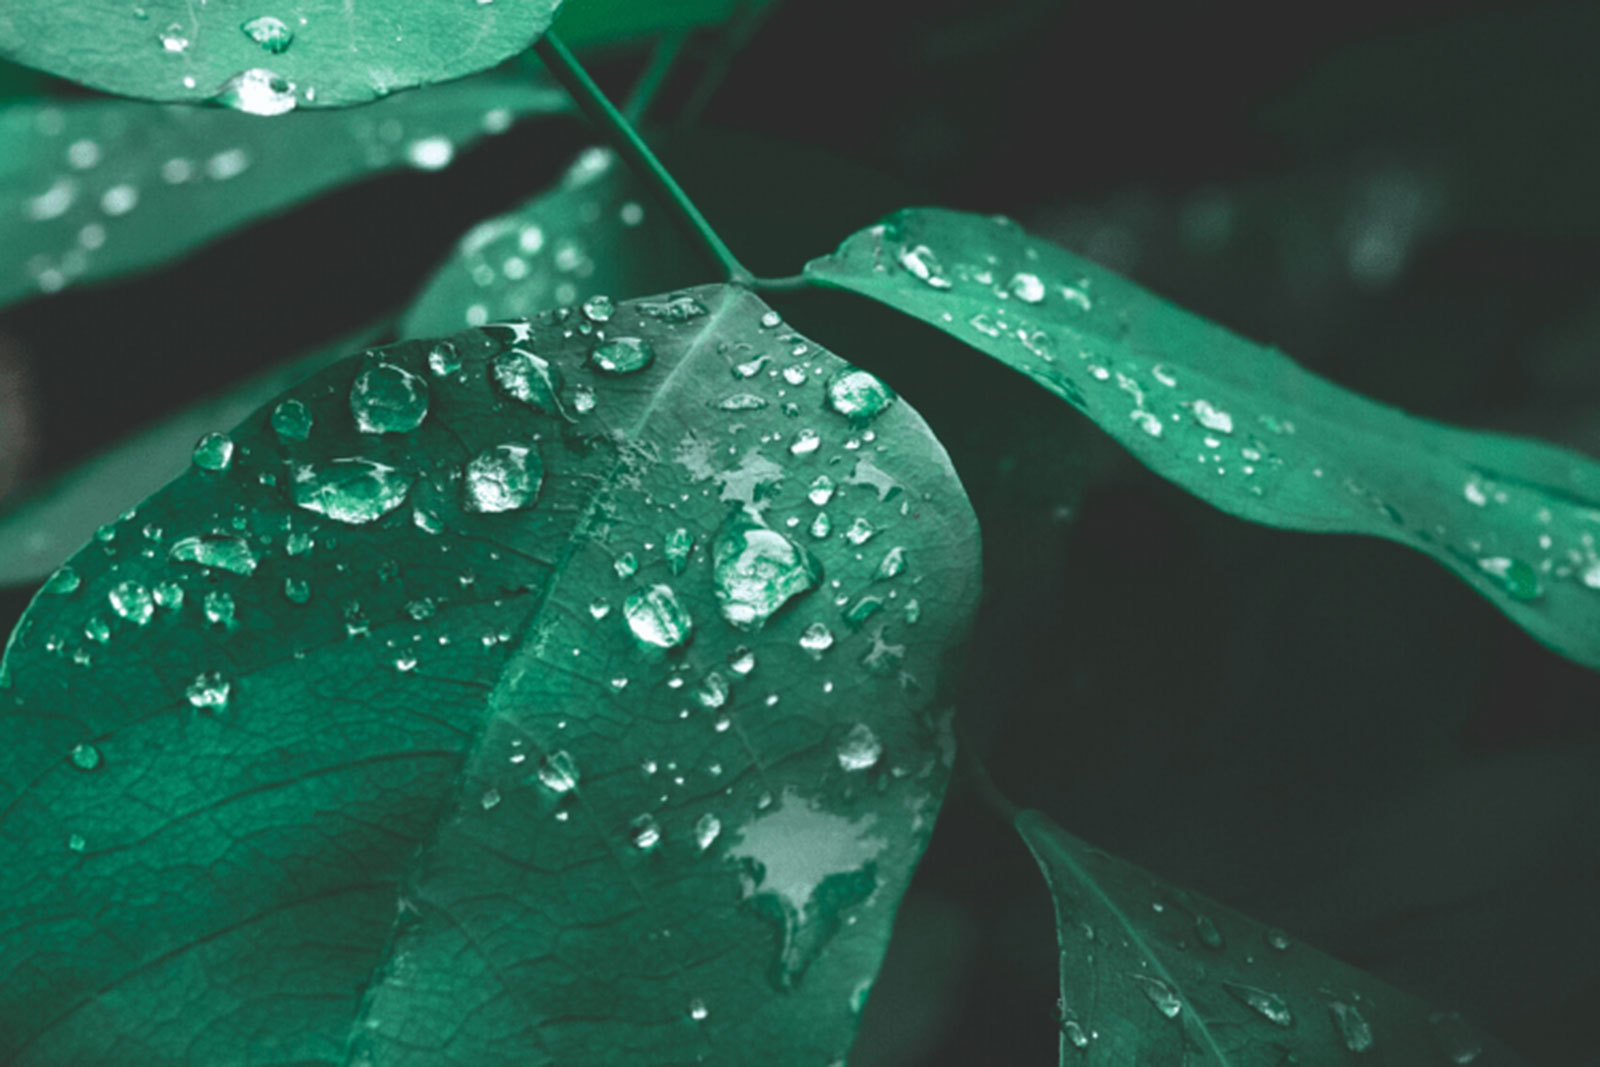 photo of green leaves with water droplets on them